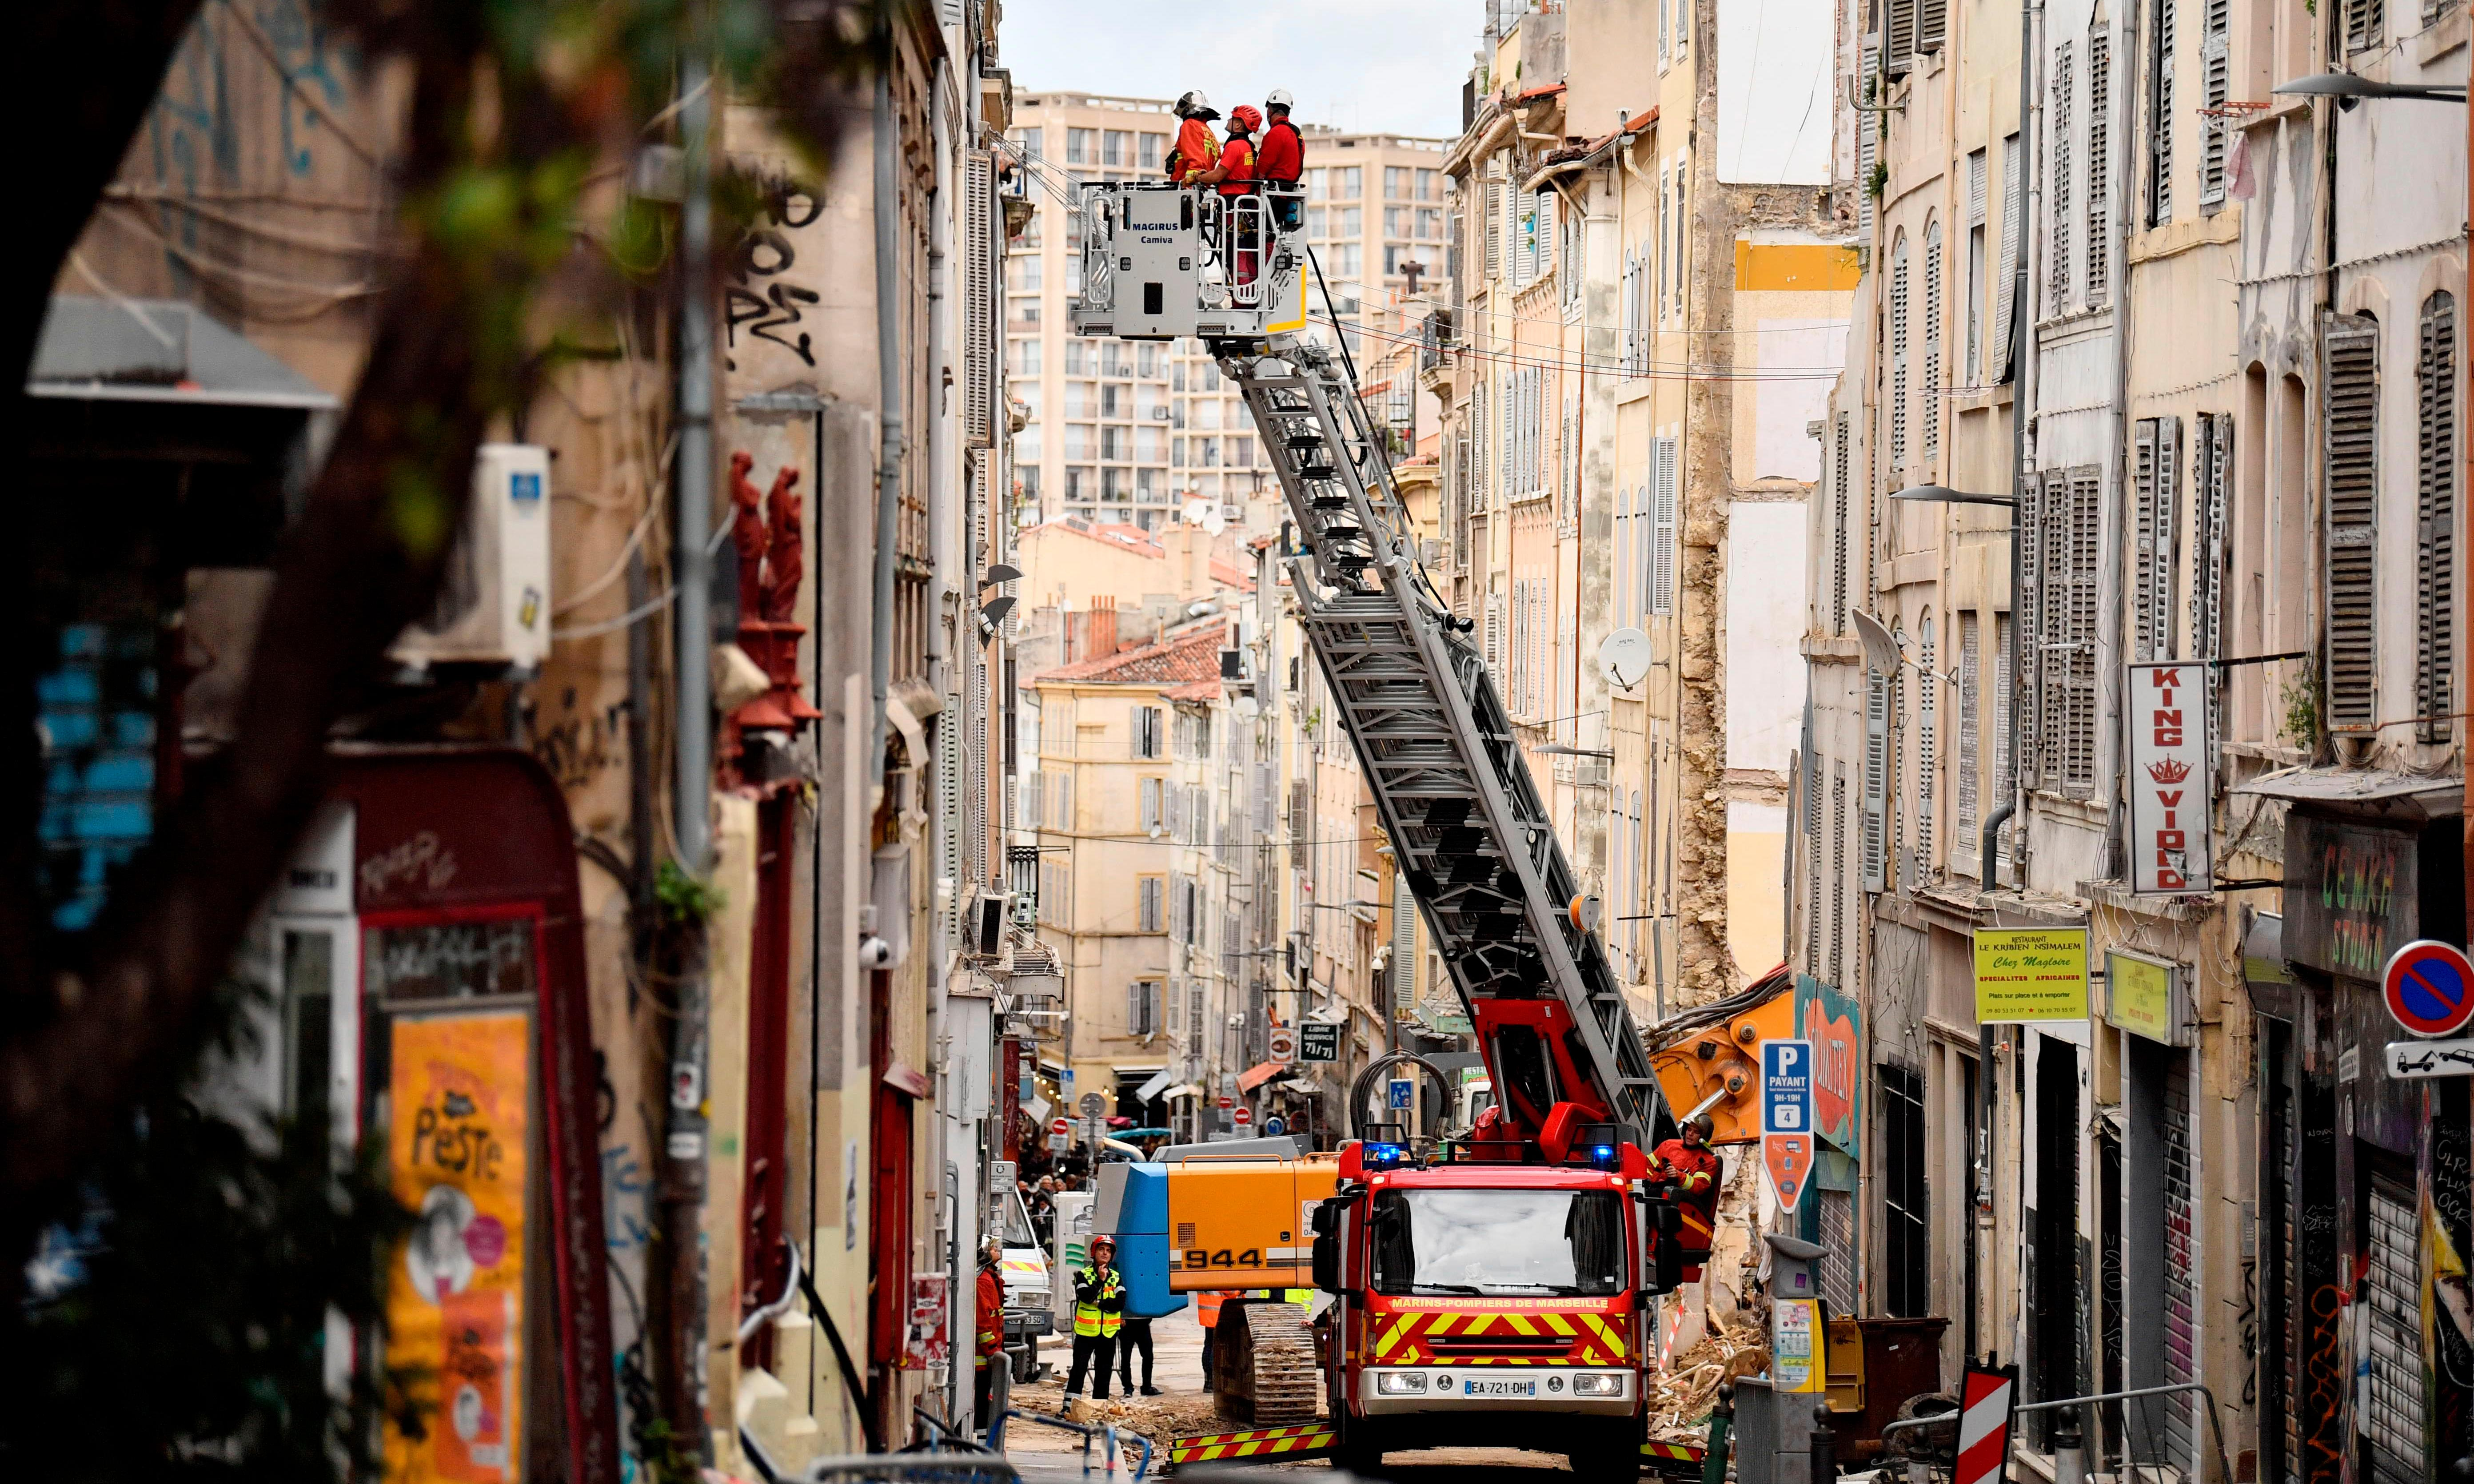 Marseille falls apart: why is France's second city crumbling?